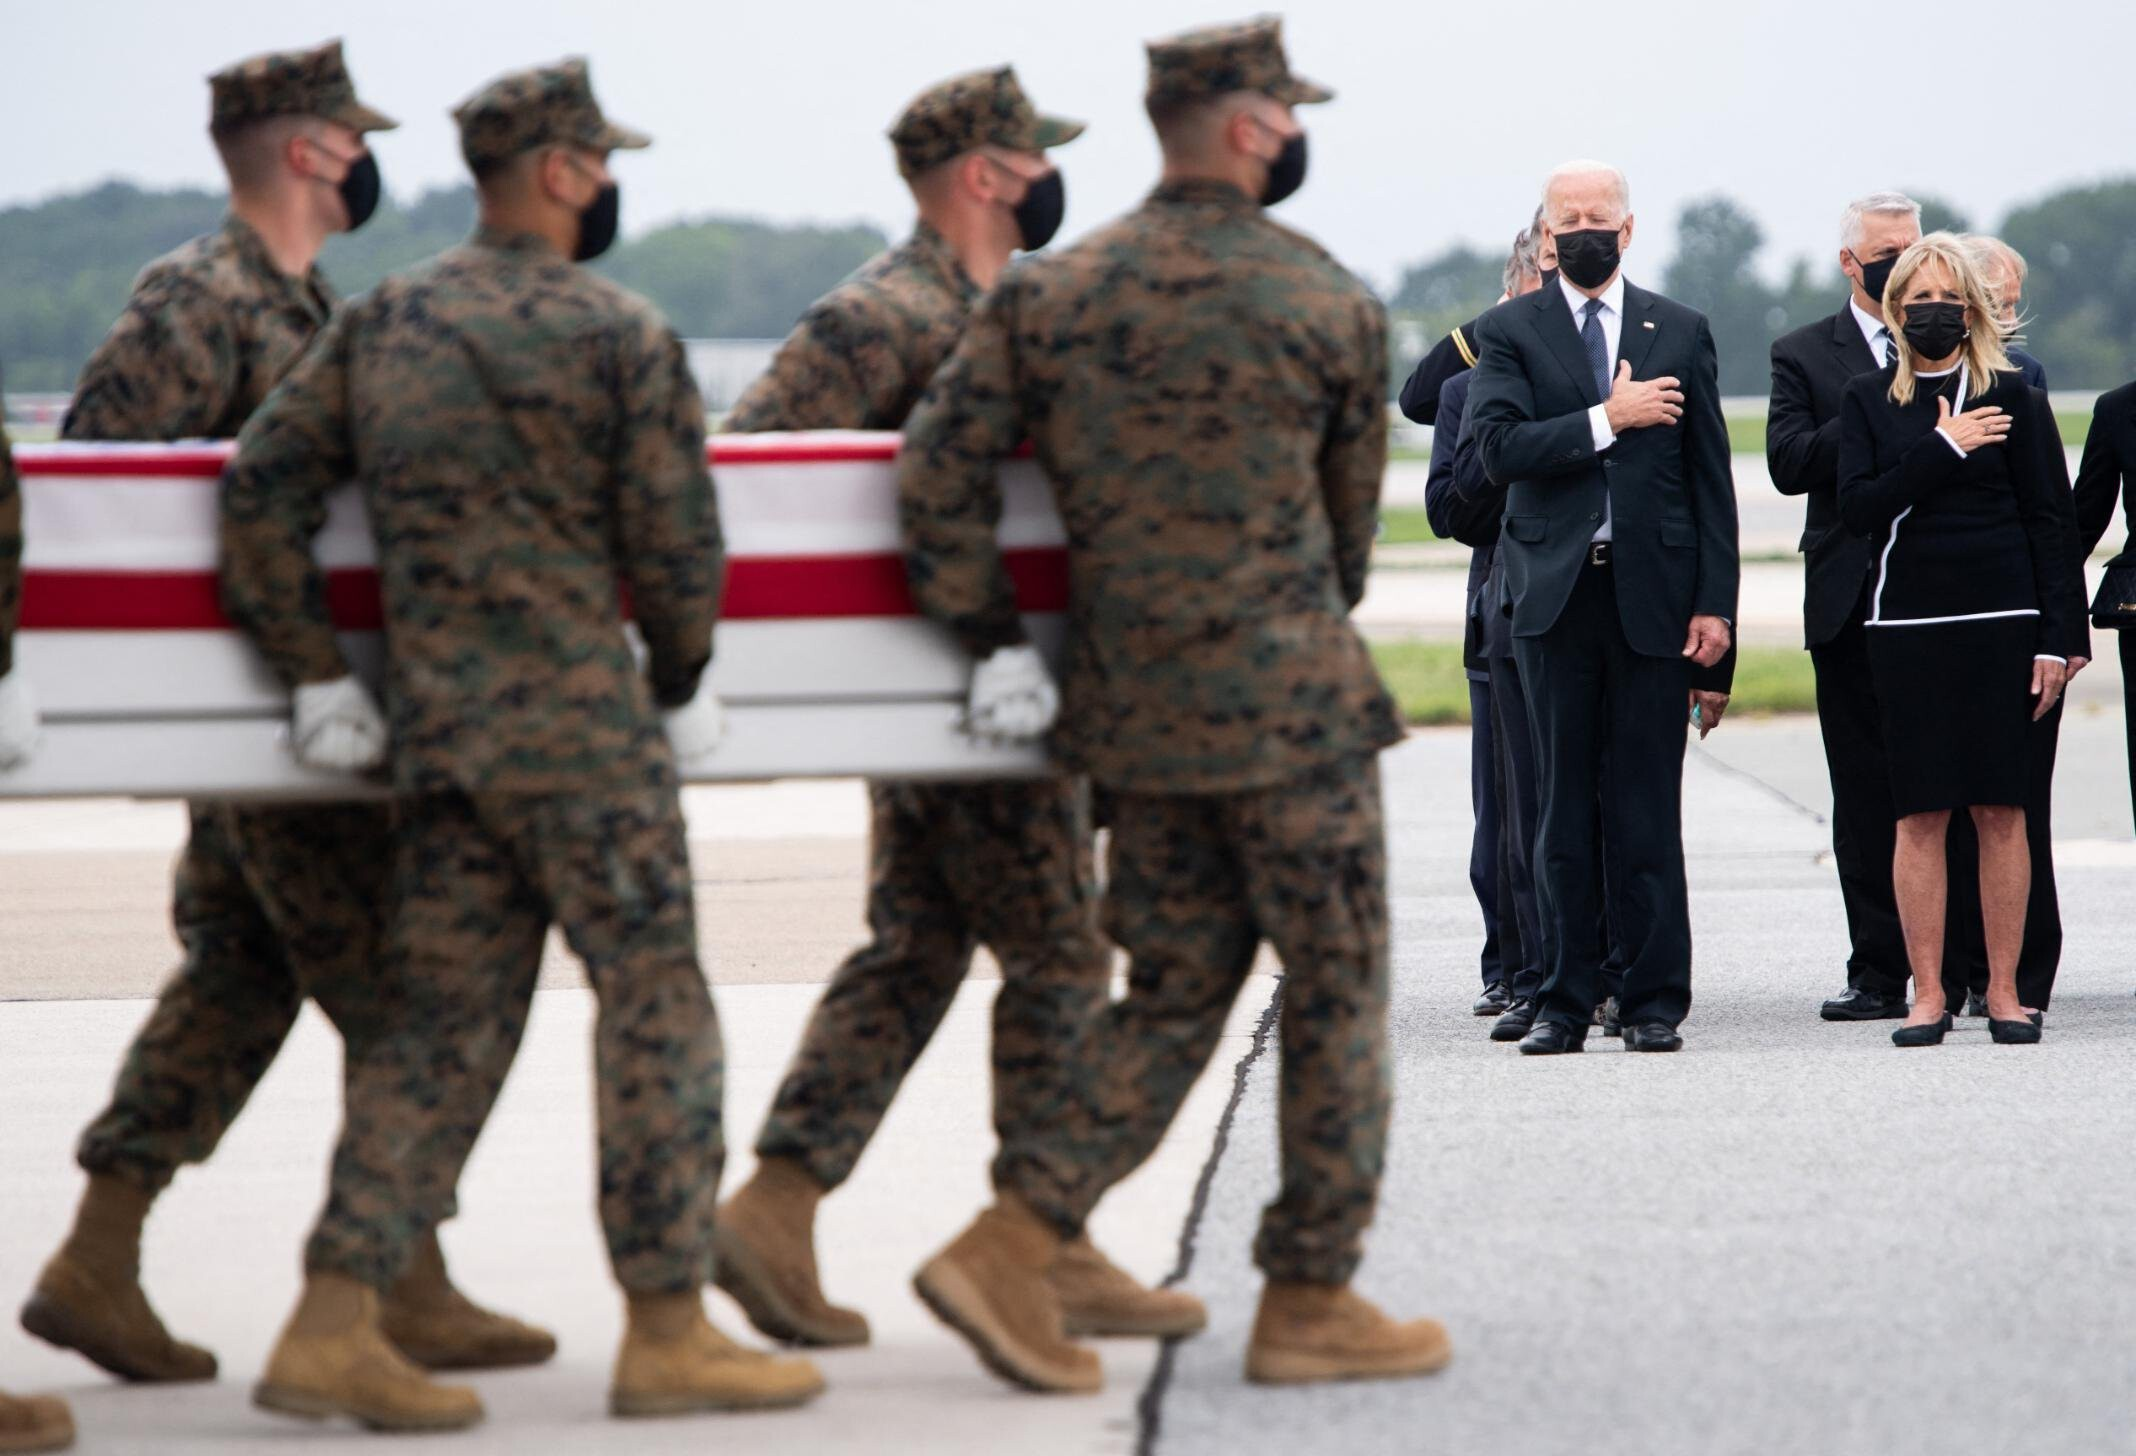 Biden attends dignified transfer at Dover Air Force Base for those killed in Afghanistan